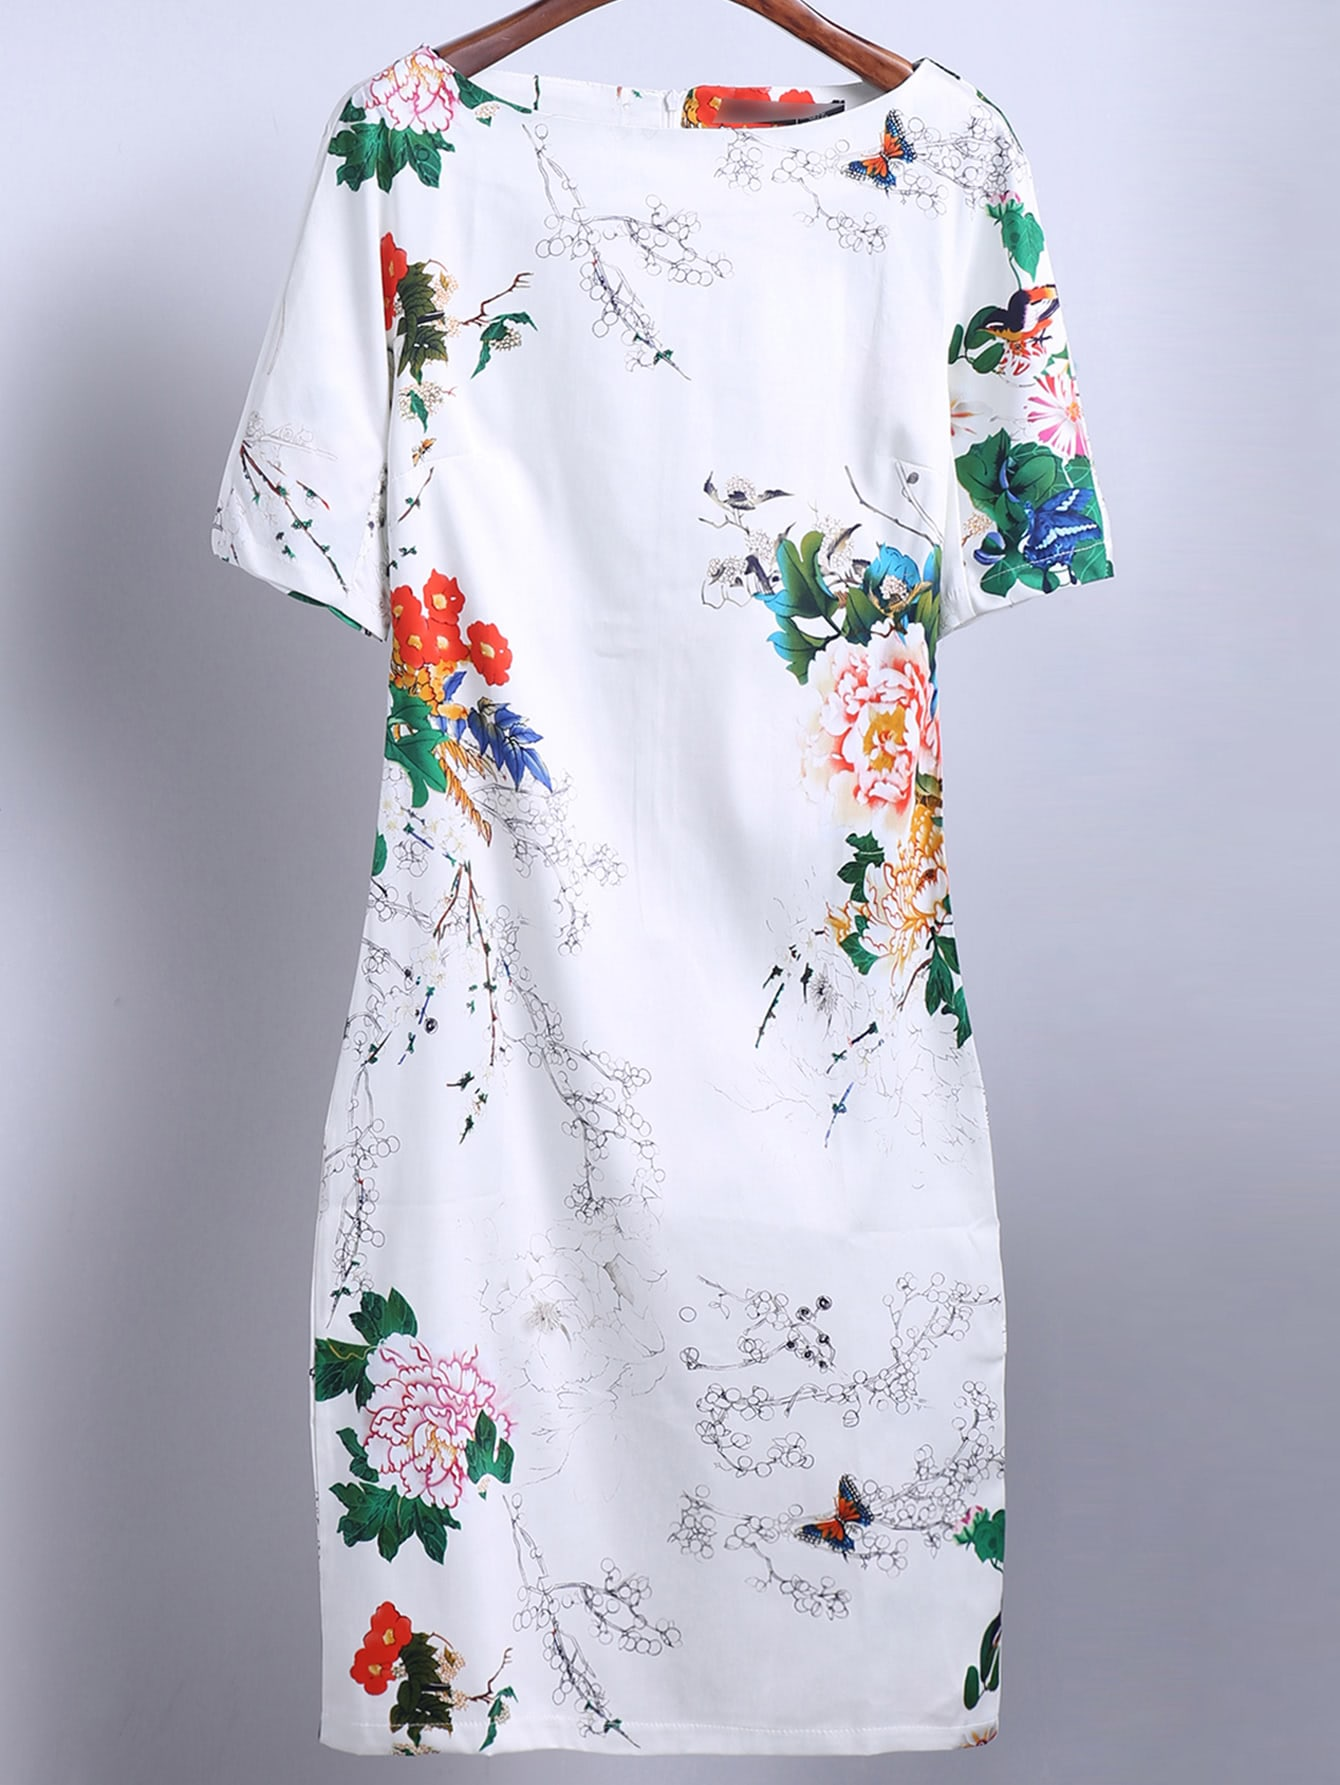 Floral Print Slim White Dress - $19.69